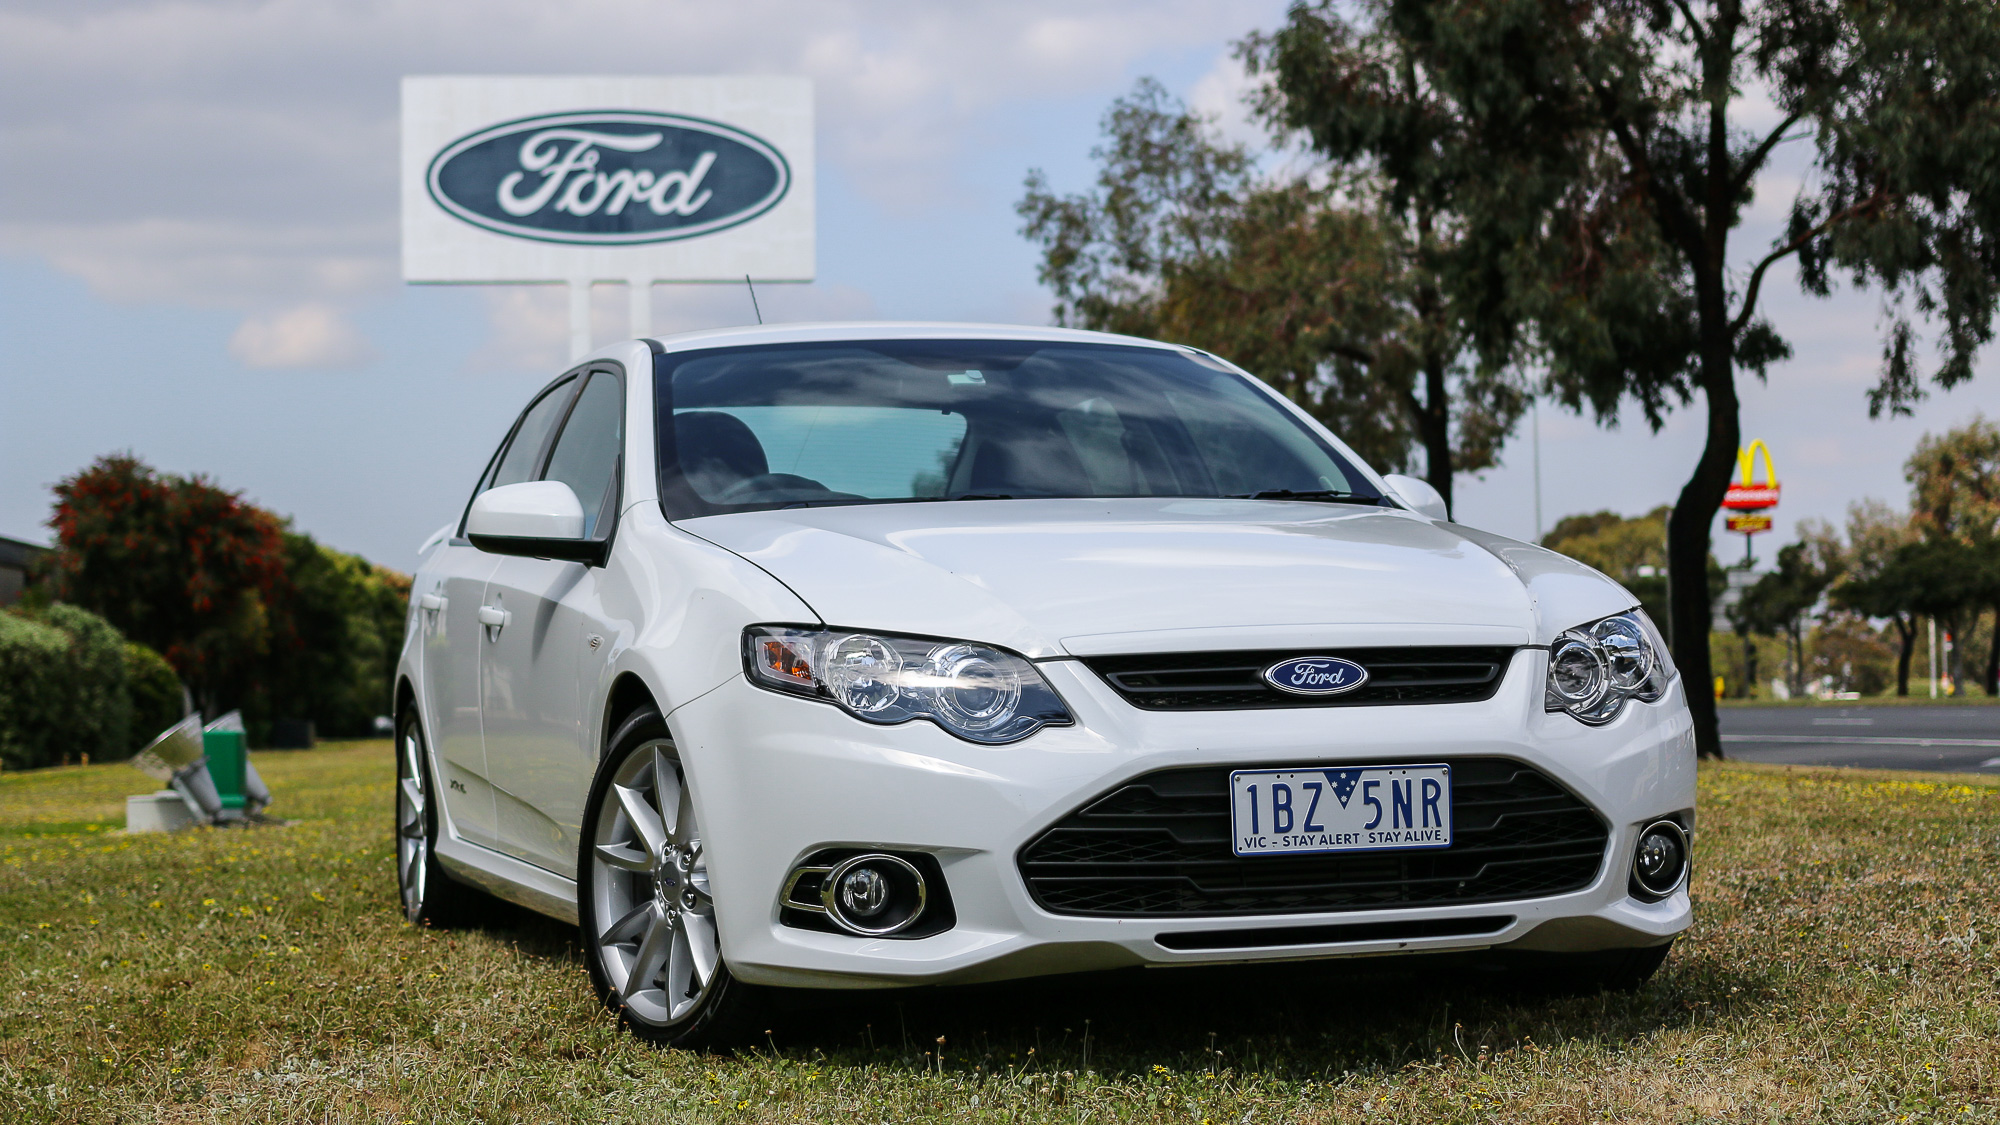 Ford Falcon XR6 Turbo Review  Runout roundup  CarAdvice